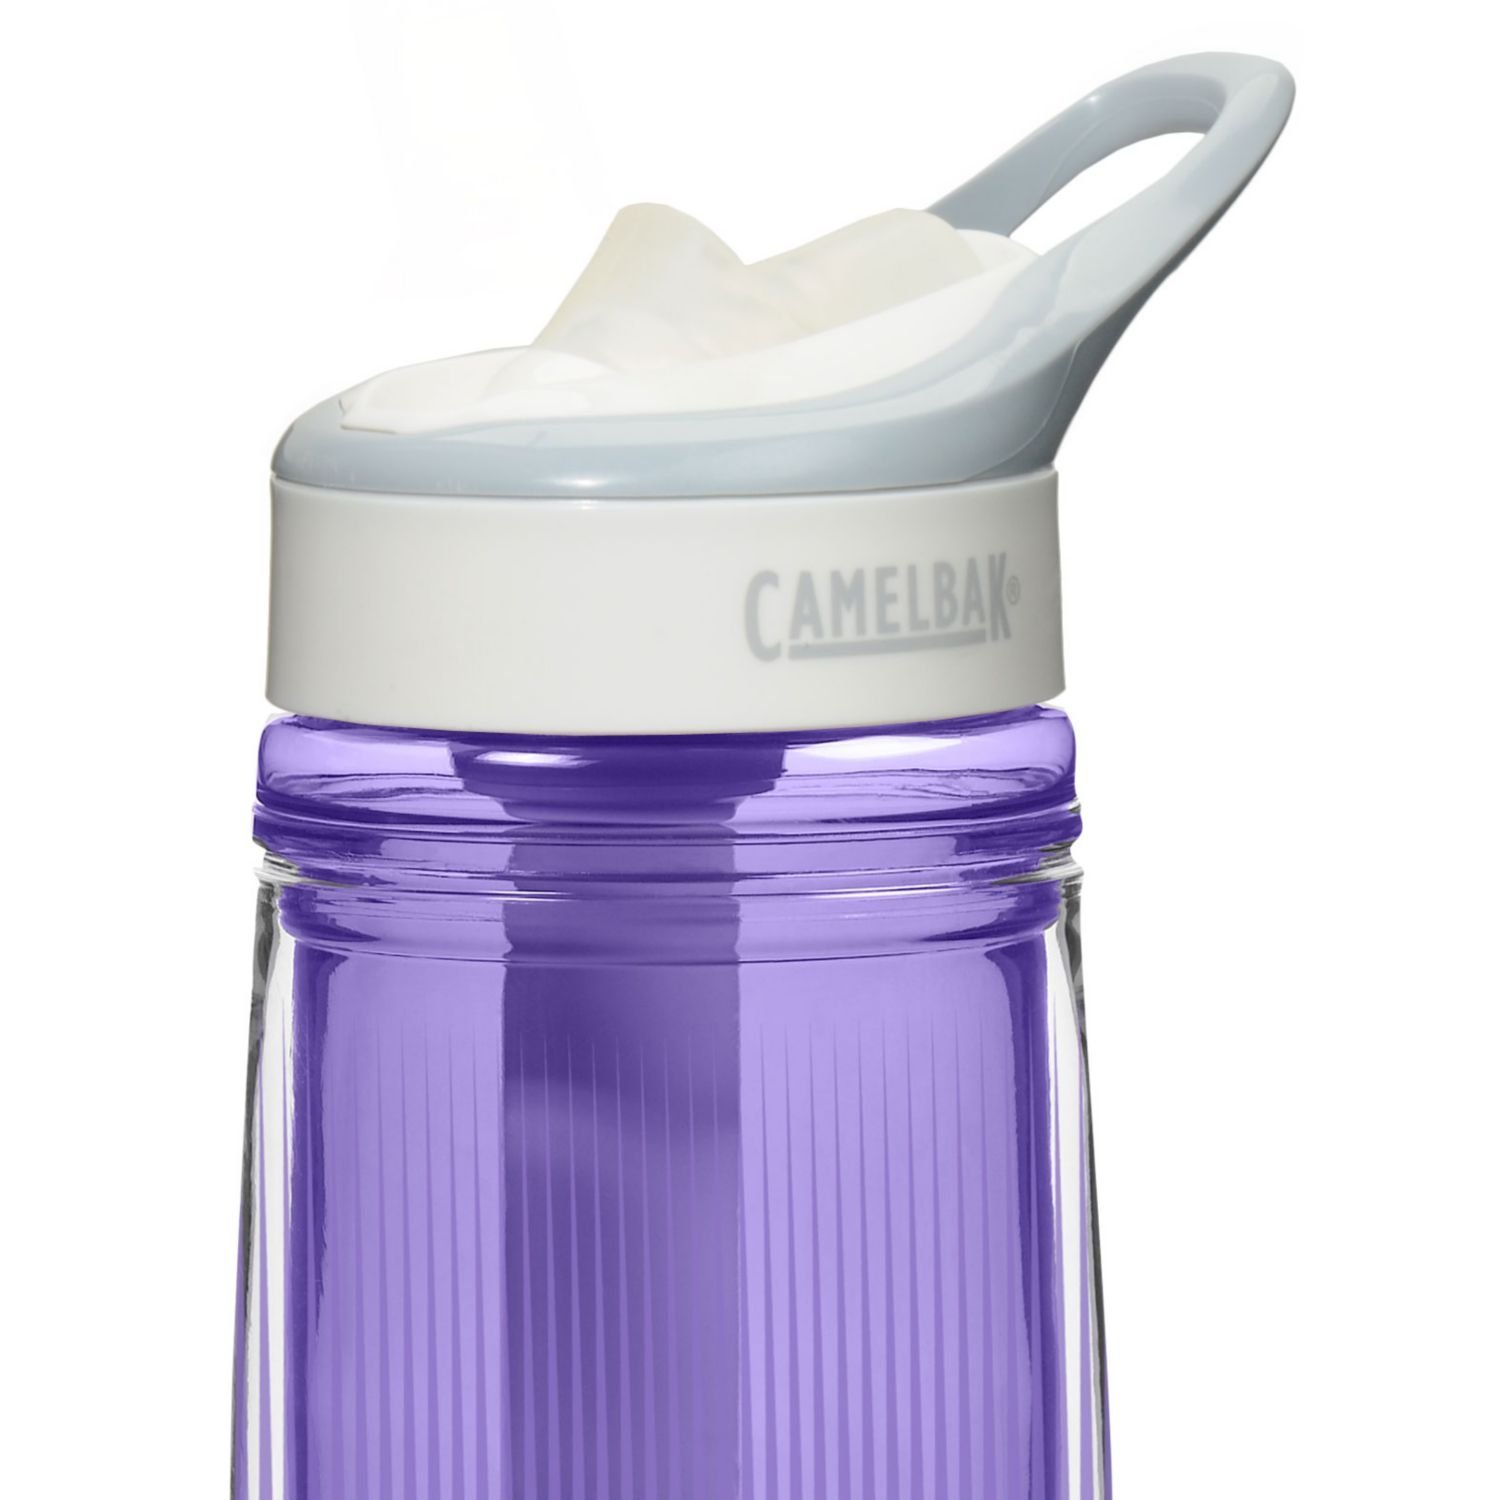 filtered water bottle reviews 2017